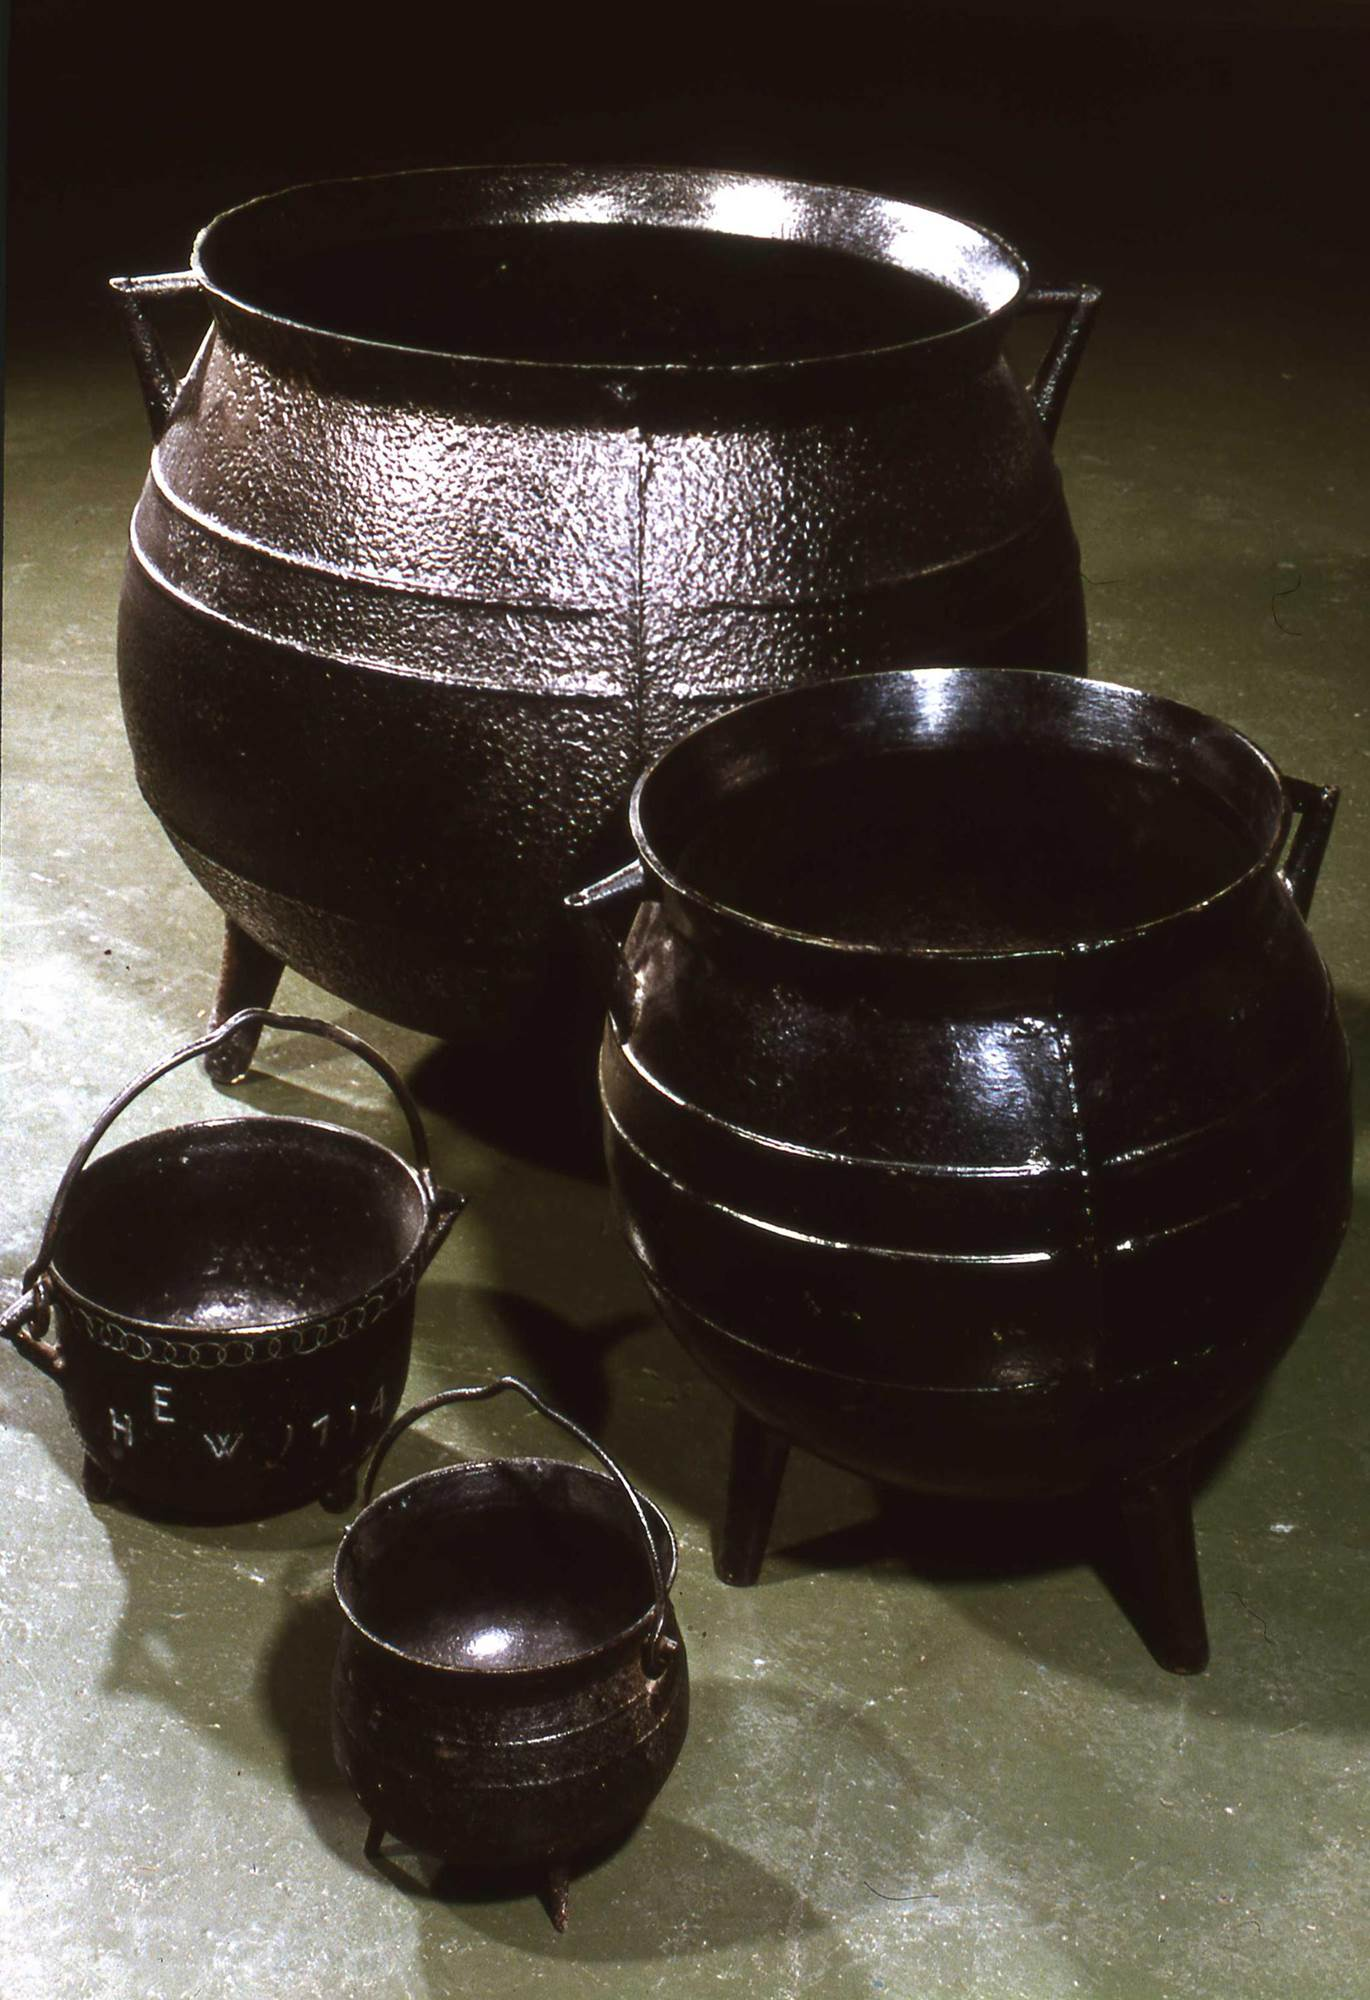 18th century cast iron cooking pots. From the Darby collection, Ironbridge Museum, Coalbrookedale, England.